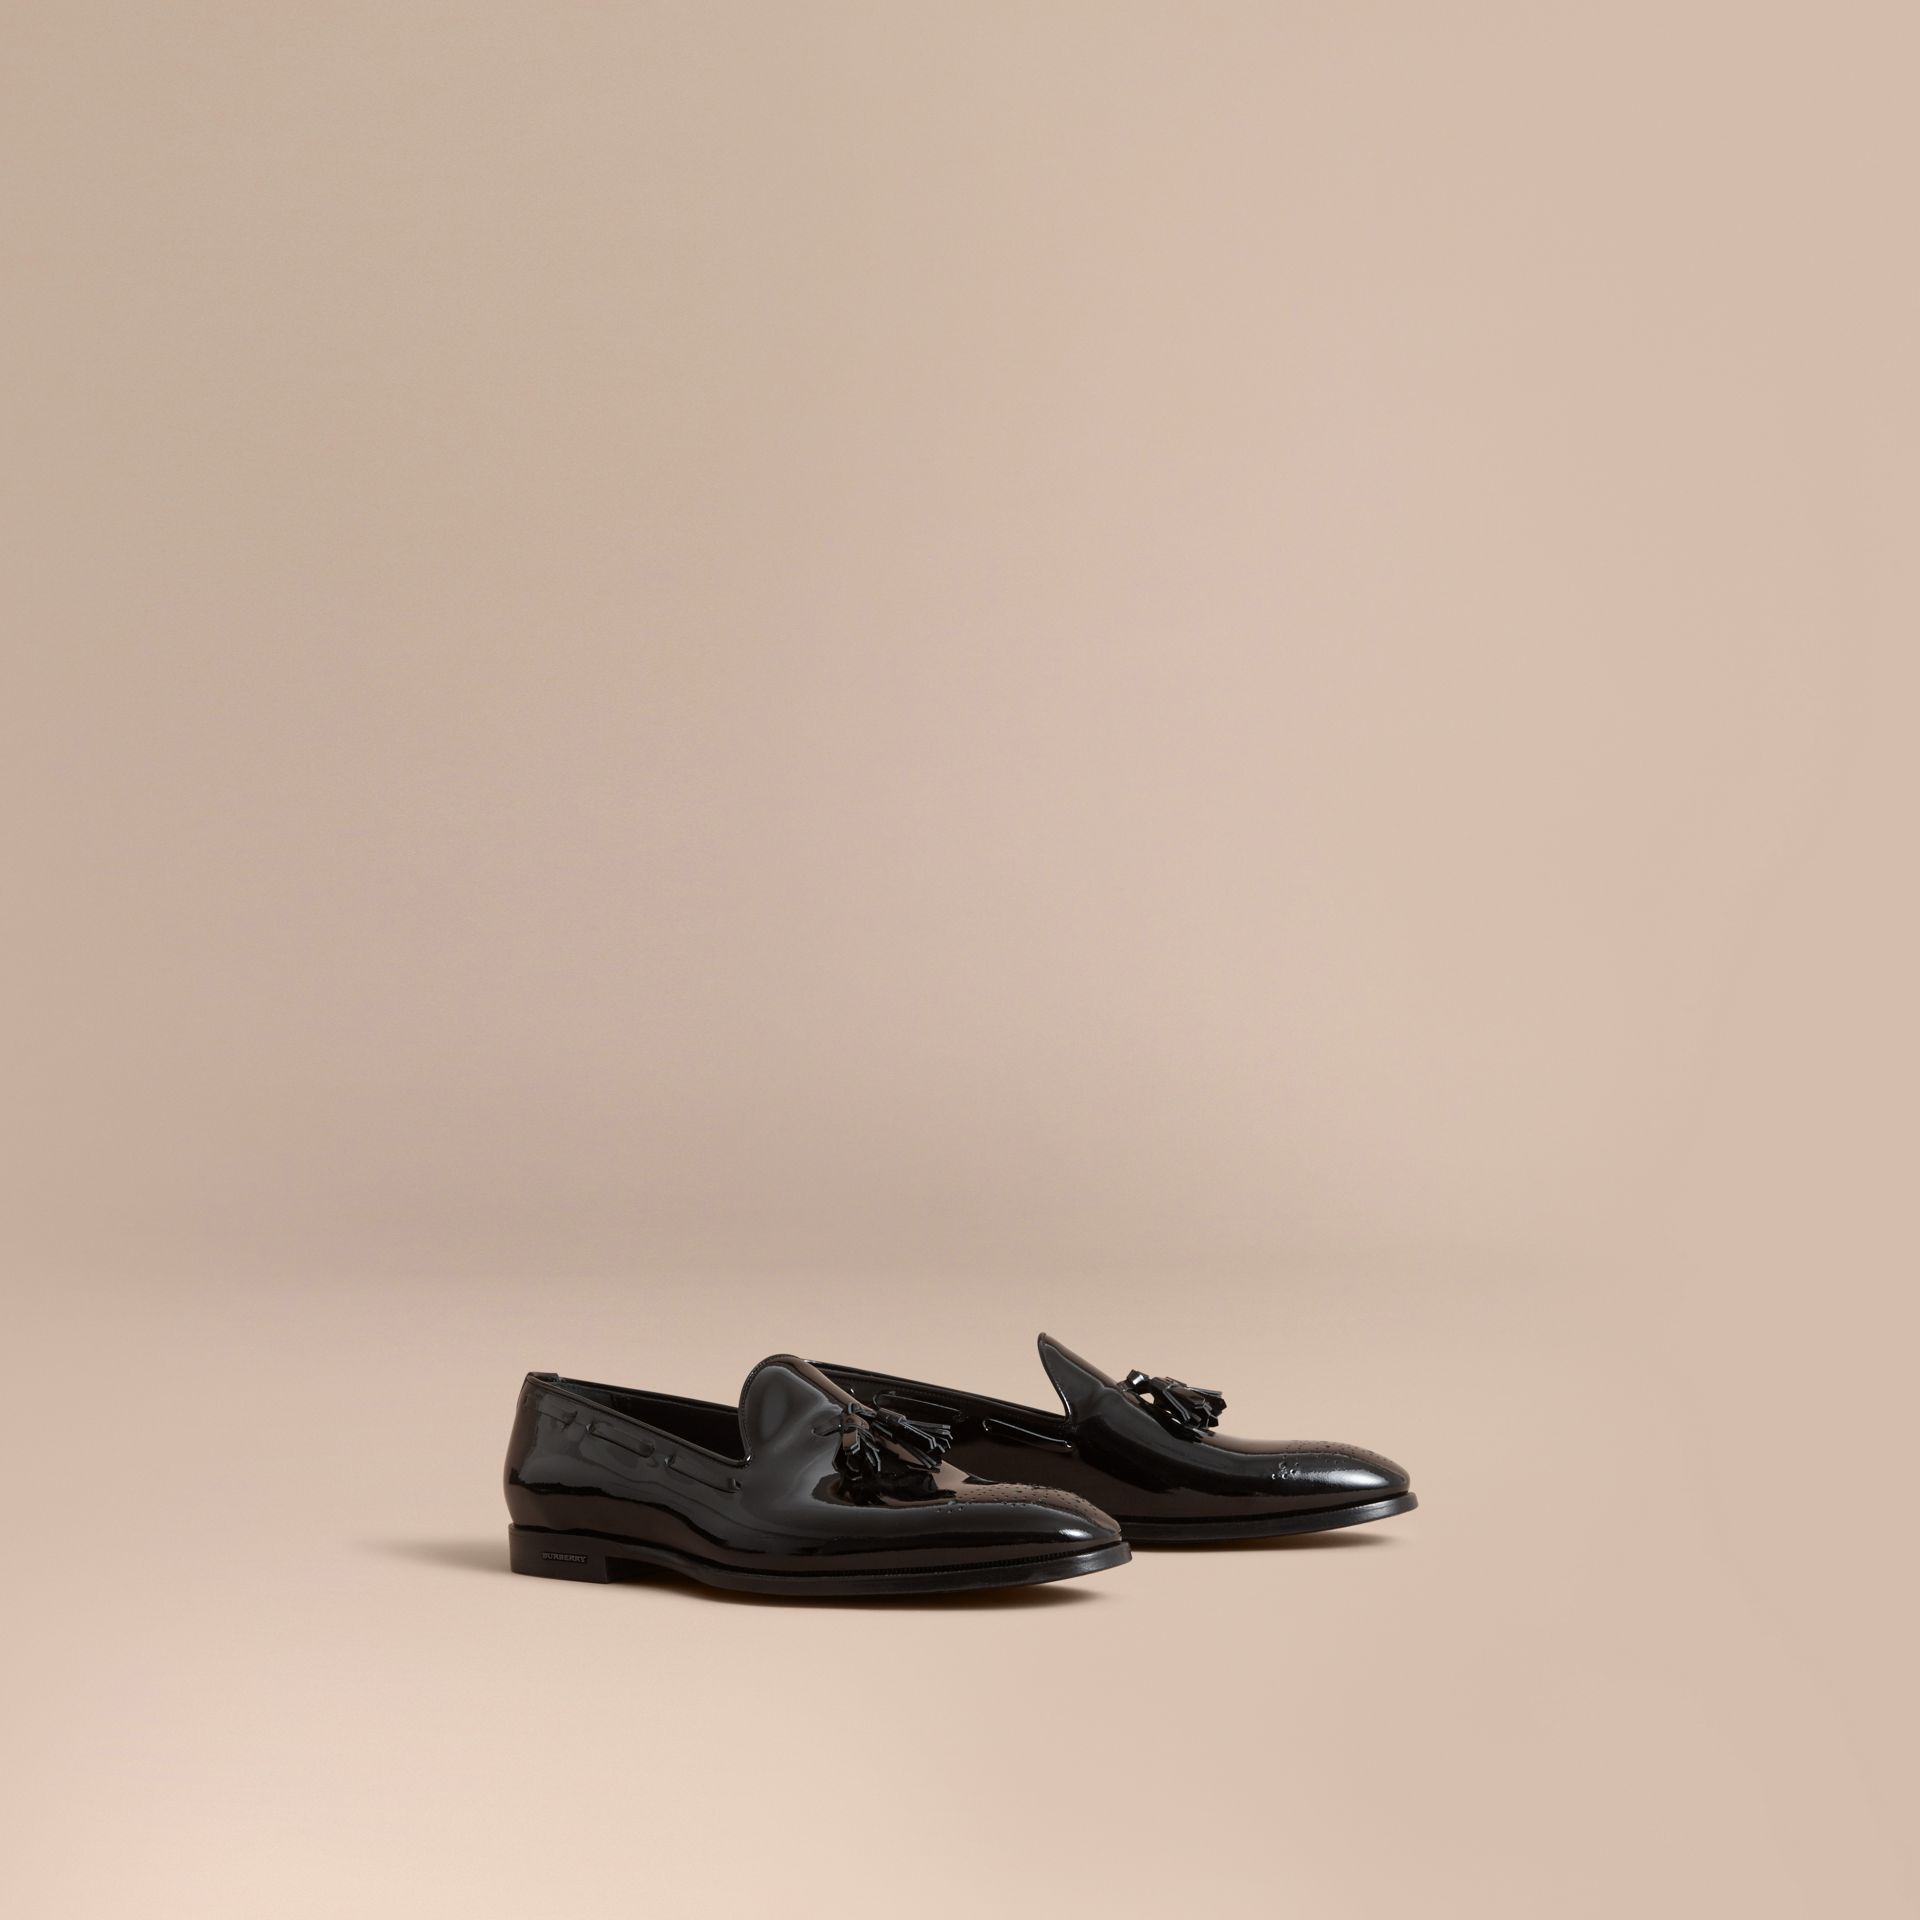 Tasselled Patent Leather Loafers in Black - Men | Burberry - gallery image 1